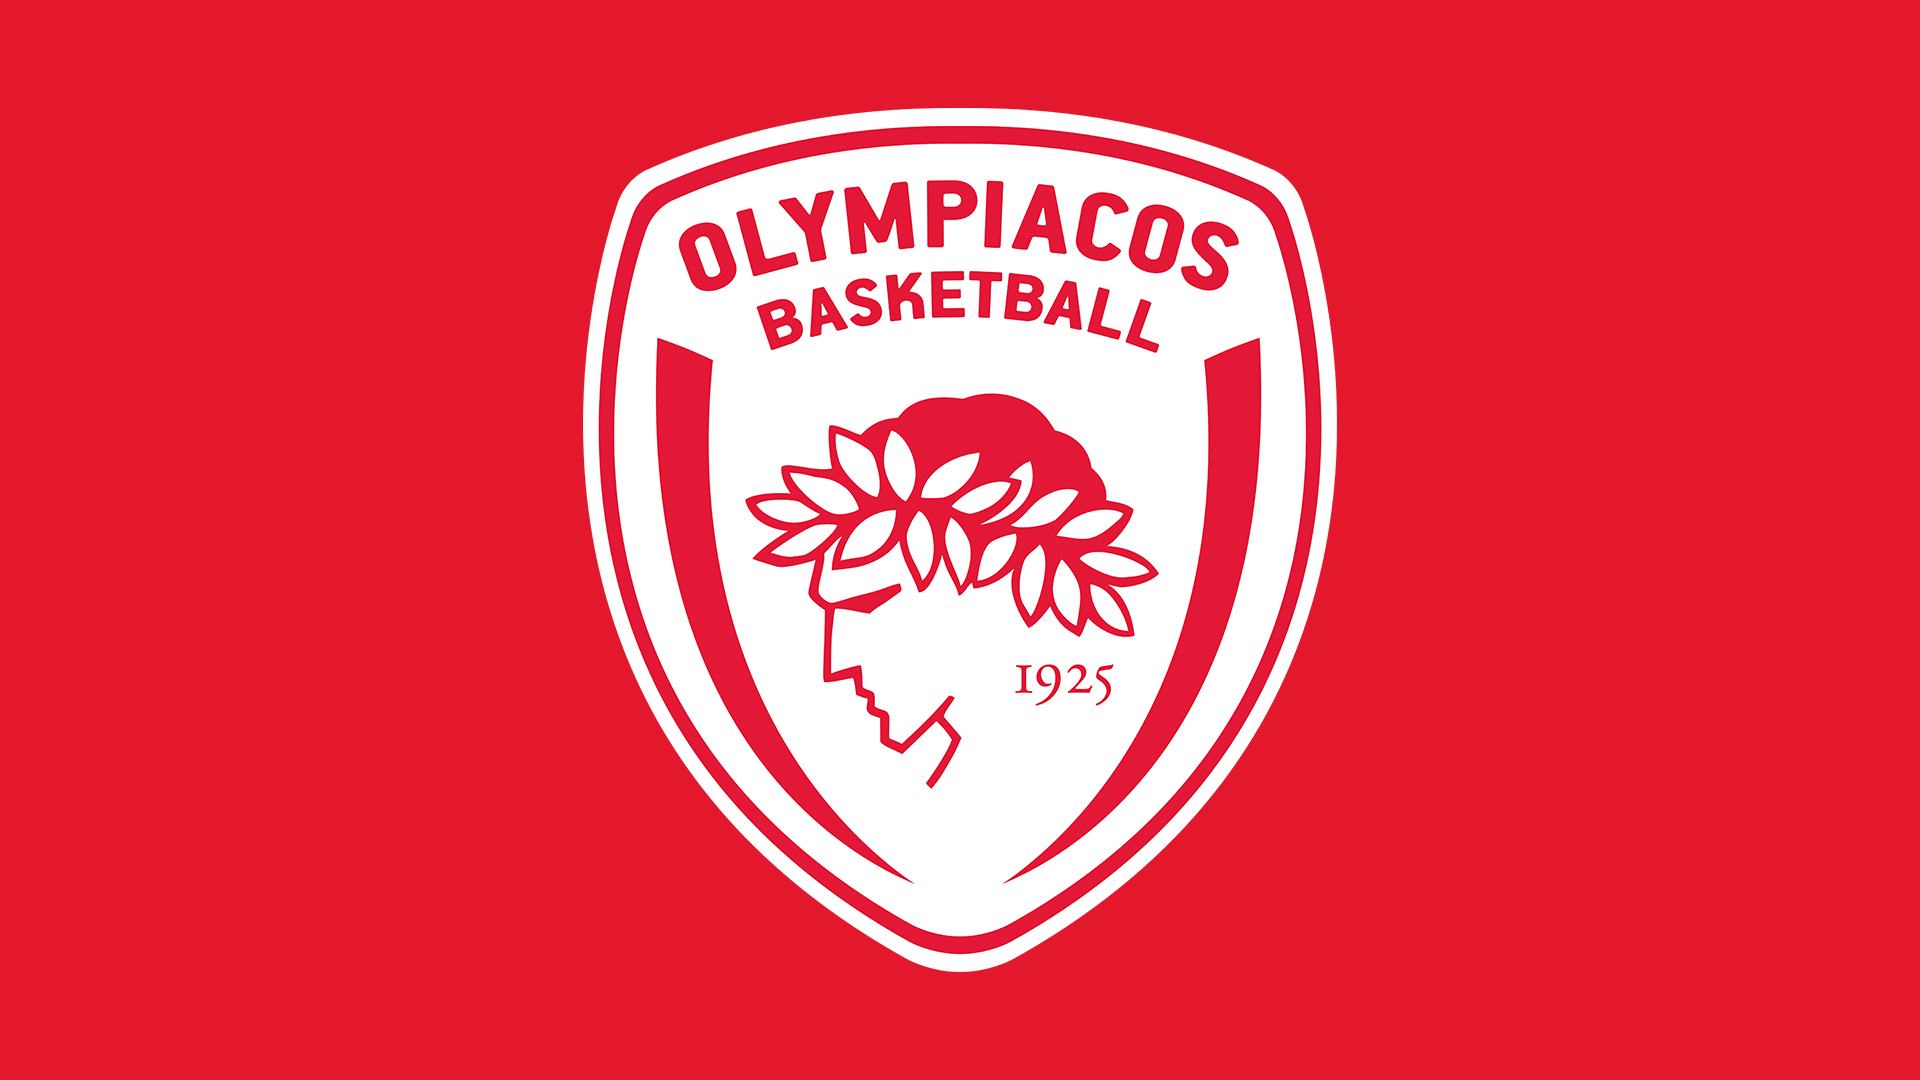 Free Download Olympiacos Fc Wallpaper 20 1920 X 1080 Stmednet 1920x1080 For Your Desktop Mobile Tablet Explore 44 Olympiacos F C Wallpapers Olympiacos F C Wallpapers Fc Barcelona Wallpapers Rangers Fc Wallpaper